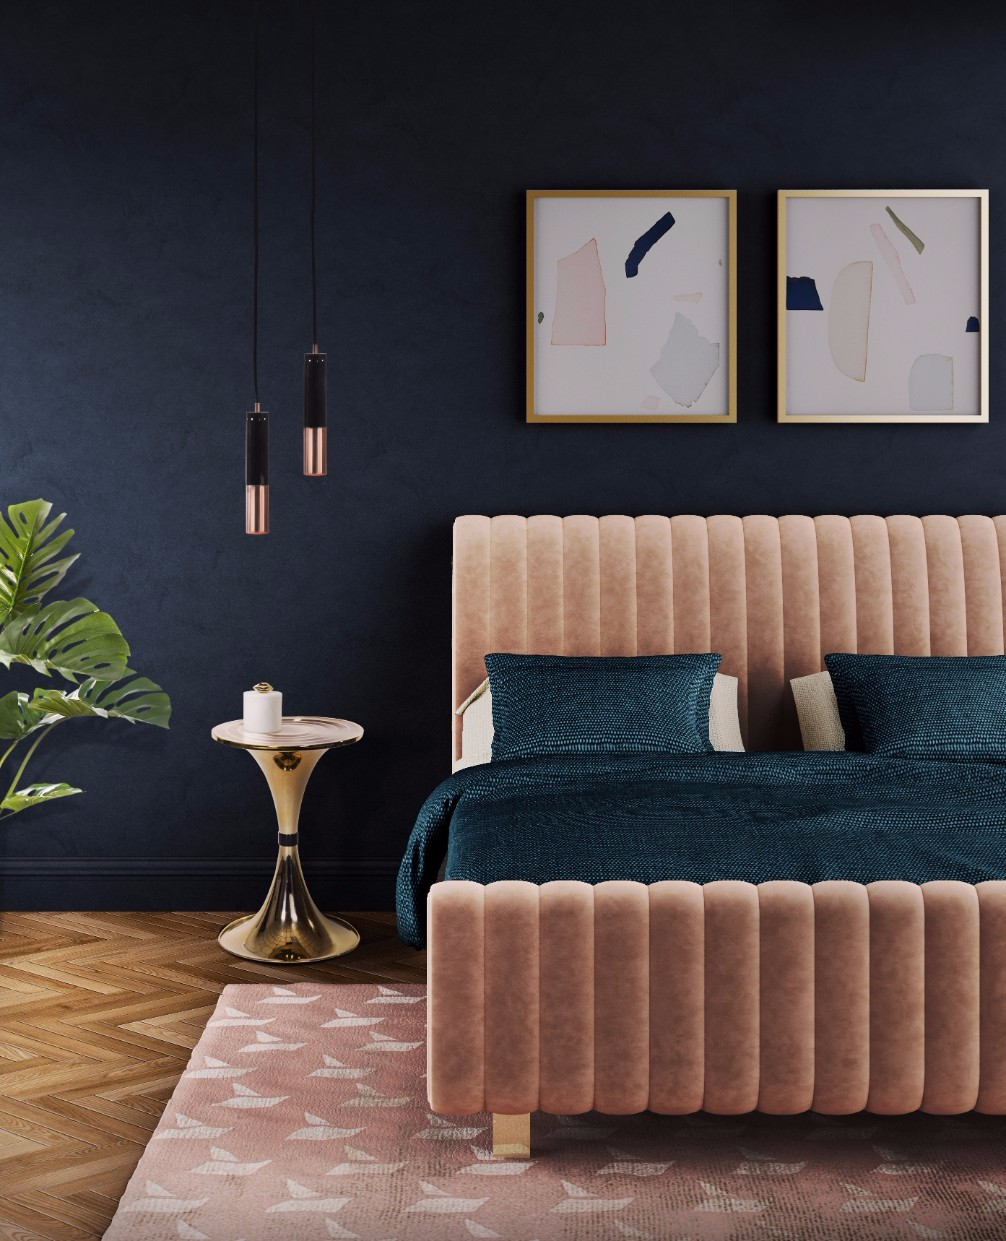 5 Incredible Ideas To Light Up Your Bedroom